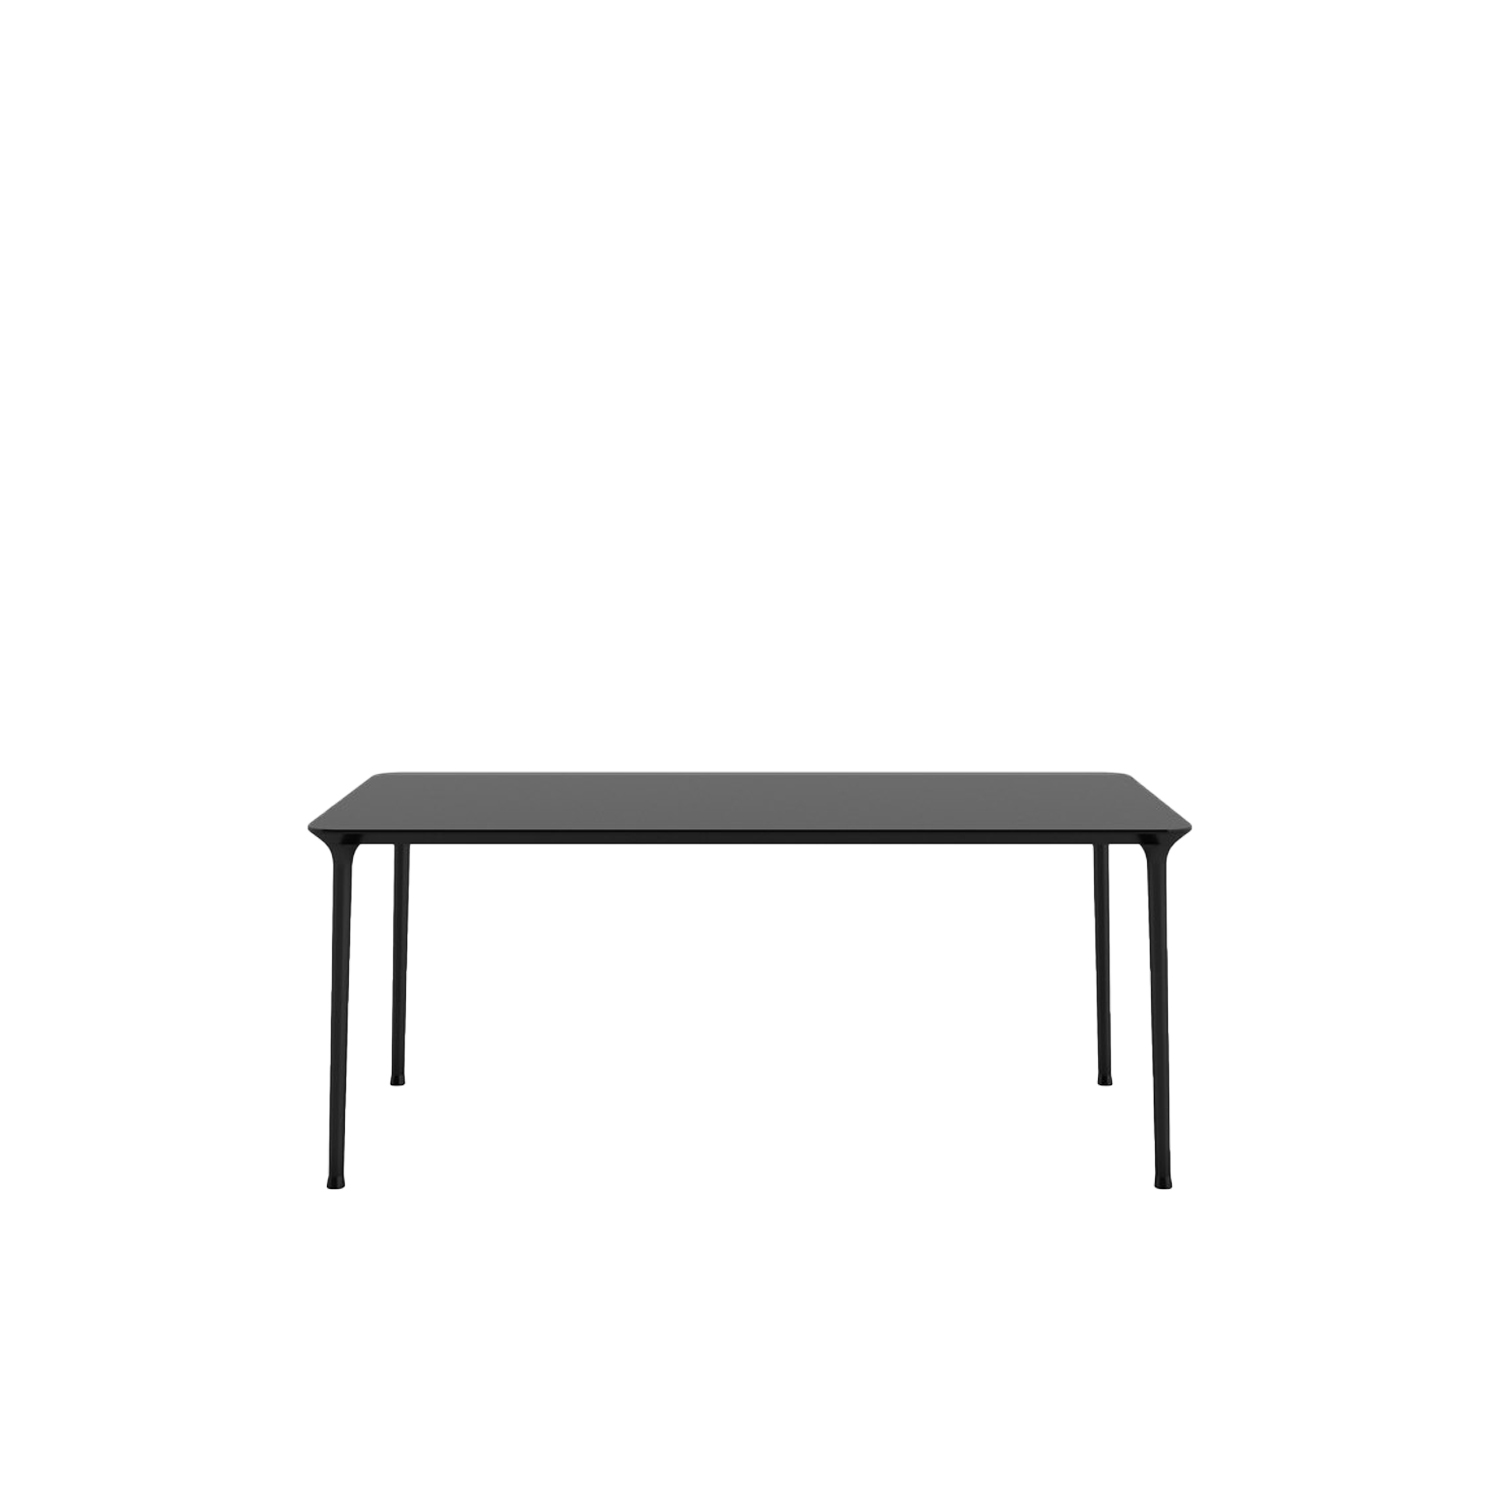 Spindle Rectangular Table  - A collection of tables characterized by tapered legs realized through die casting of aluminium and linked with the thin rounded top that gives a pleasant softness and prettiness. The removable legs and its stackability are two characteristics that make it particularly suitable for the contract use, while the complete range of tops dimensions, square or rectangular, allows to satisfy different needs both in collective and residential environments: like writing desks, dining or meeting tables. | Matter of Stuff